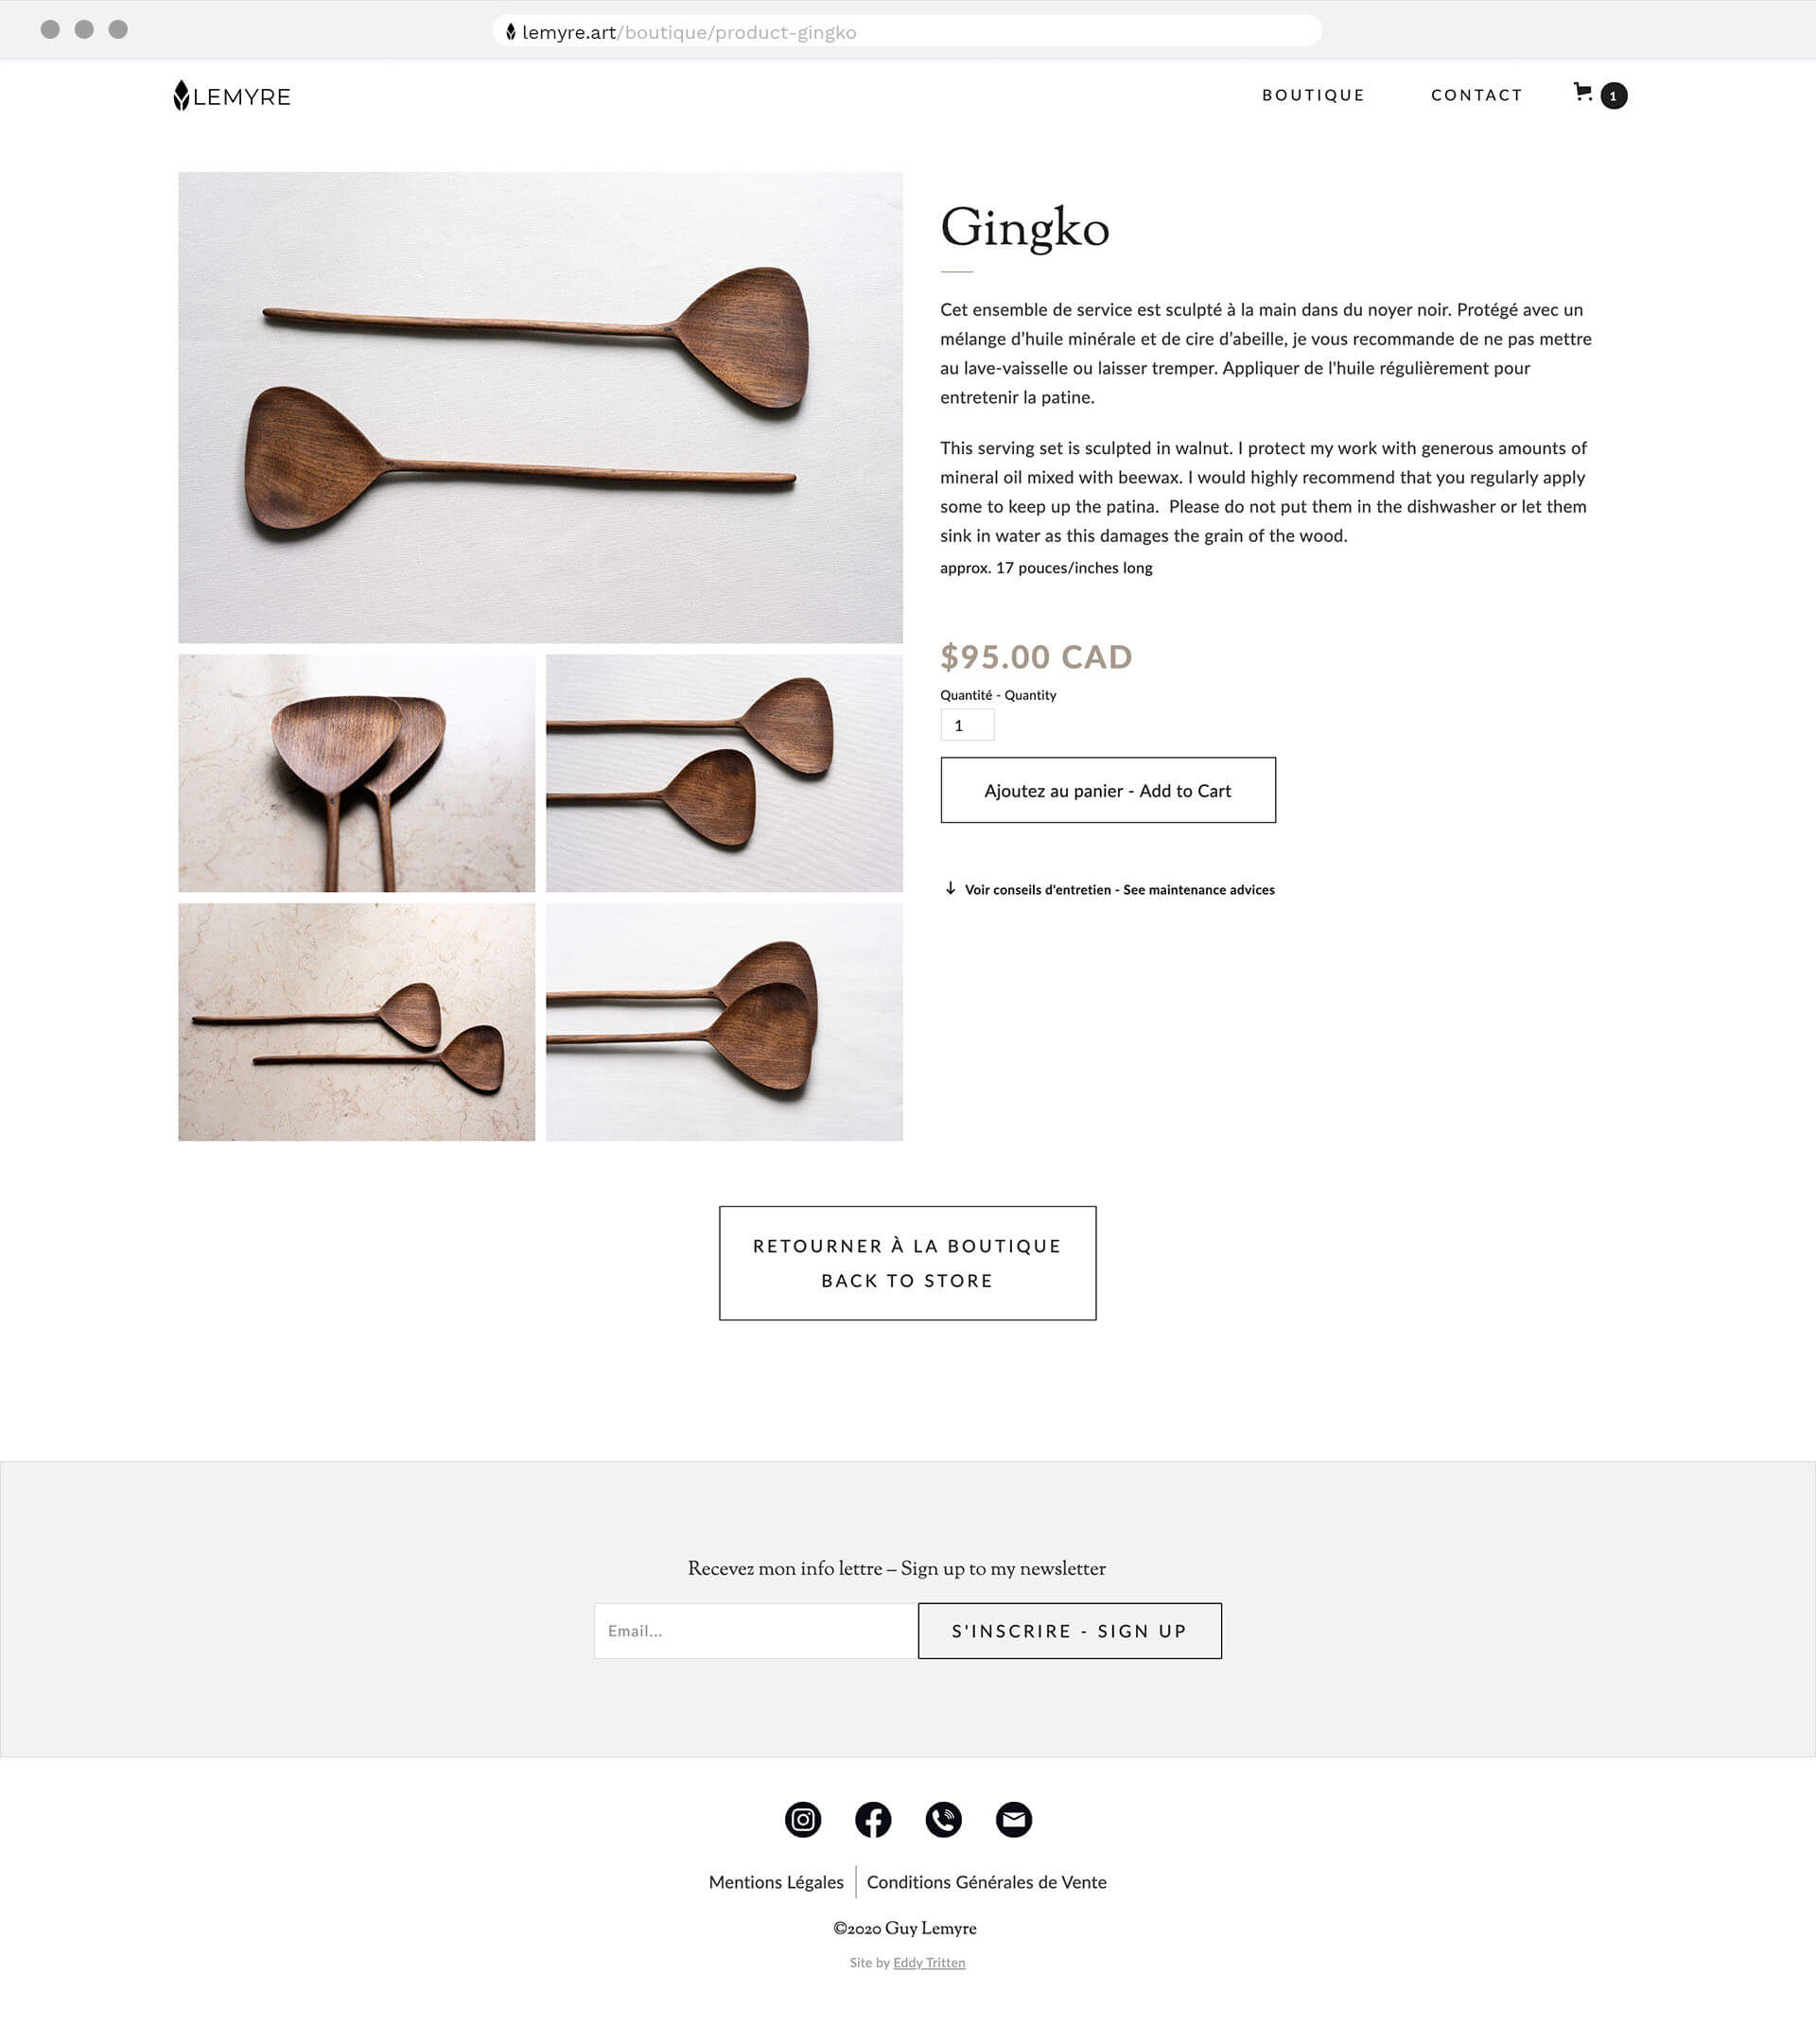 Product page design from Guy Lemyre's online store by Eddy Tritten.